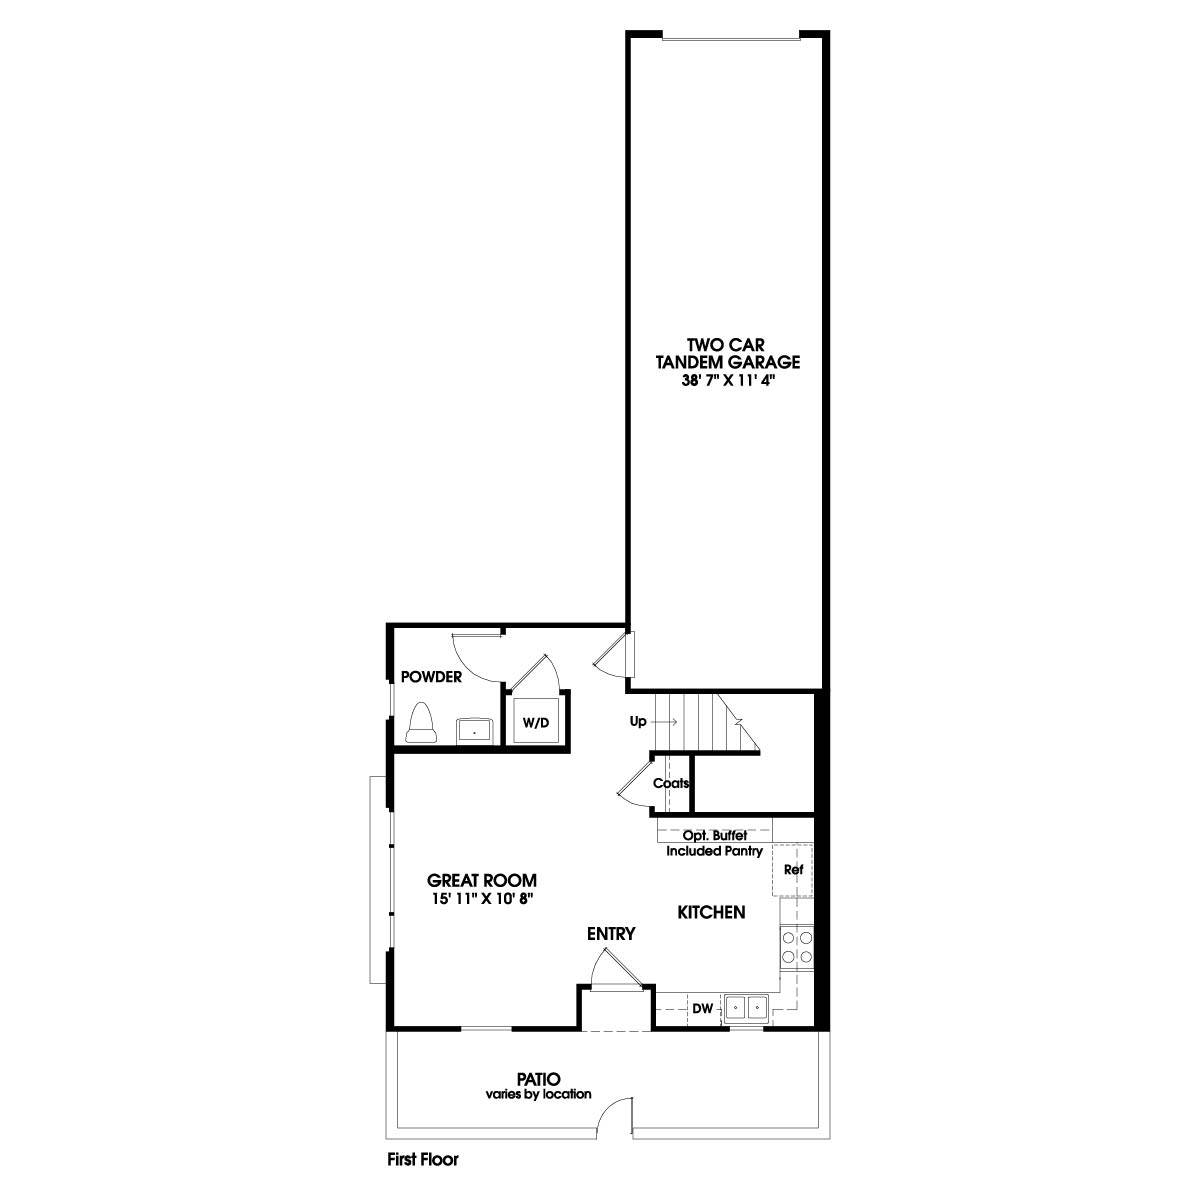 First floor residence 2 floor plan | Holiday at New Haven in Ontario Ranch, CA | Brookfield Residential